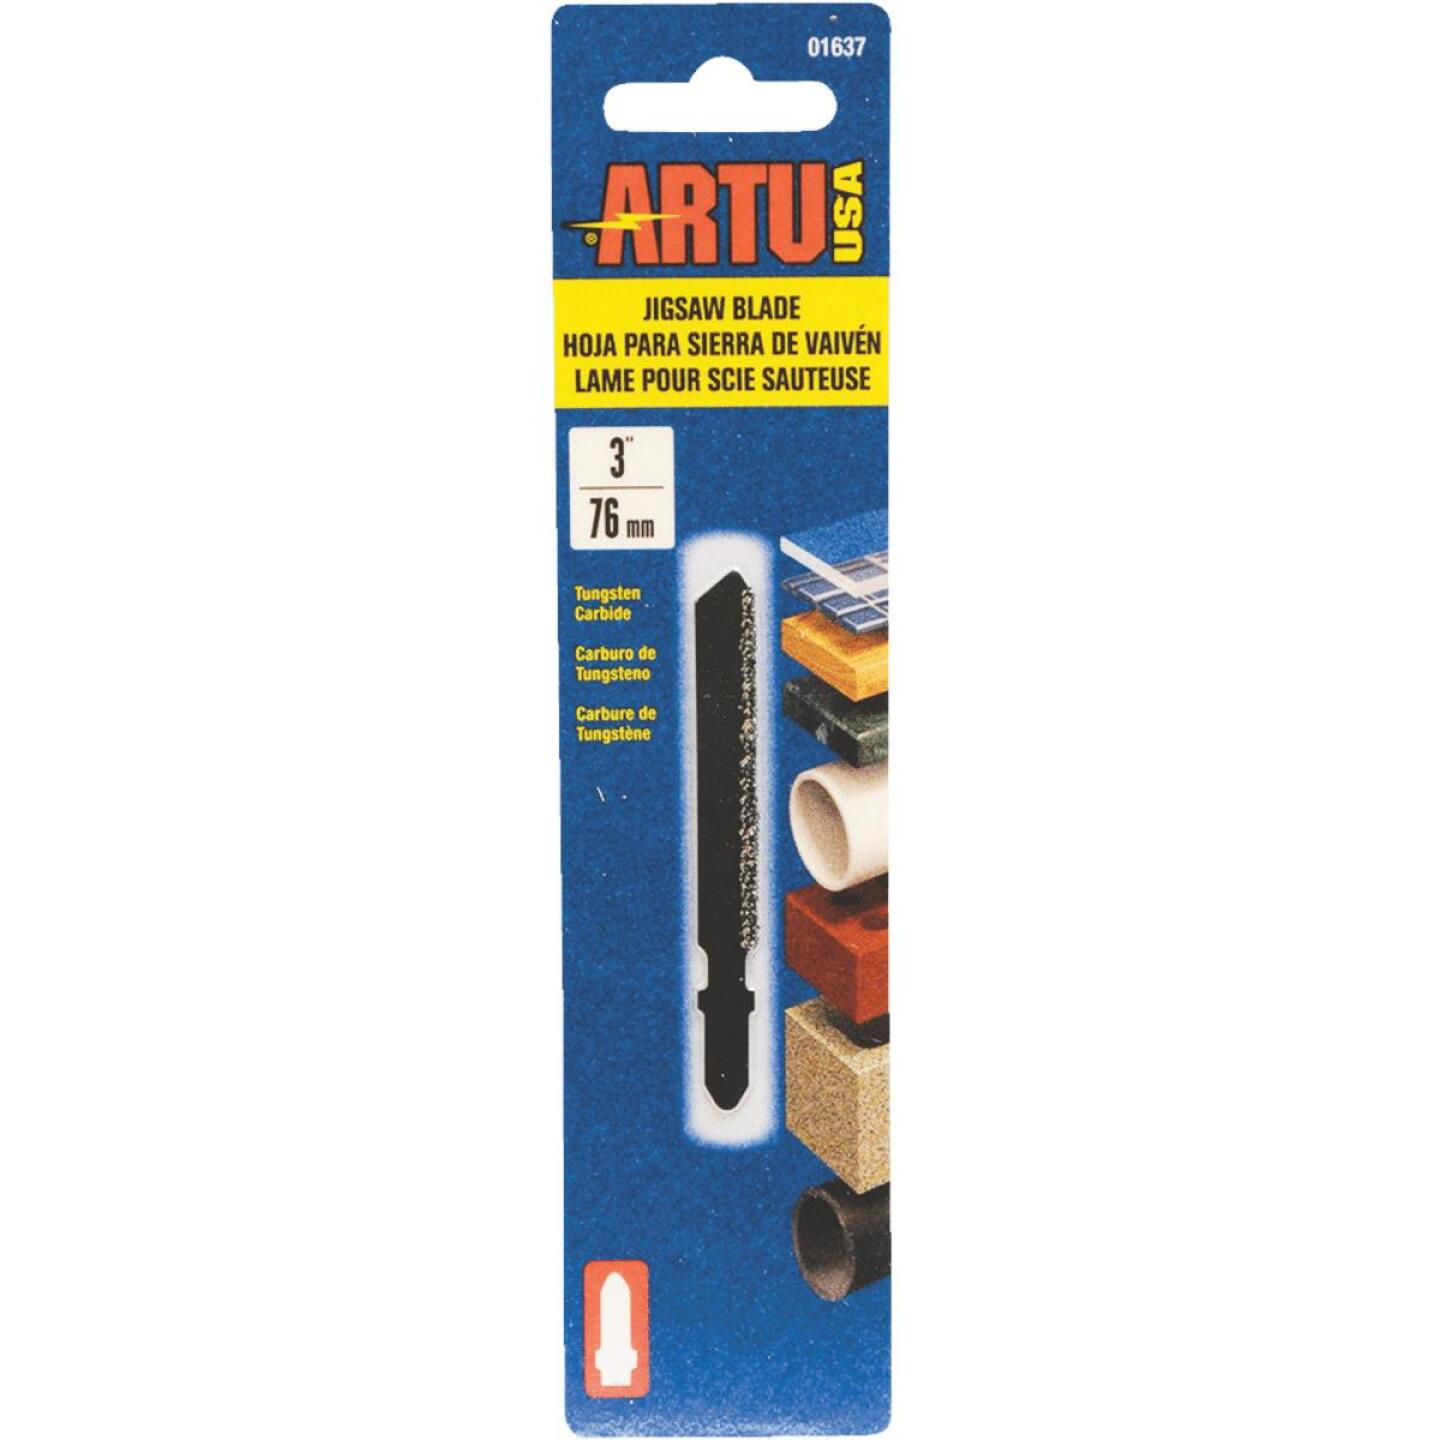 ARTU T-Shank 3 In. Carbide Grit Edge Jig Saw Blade Image 1